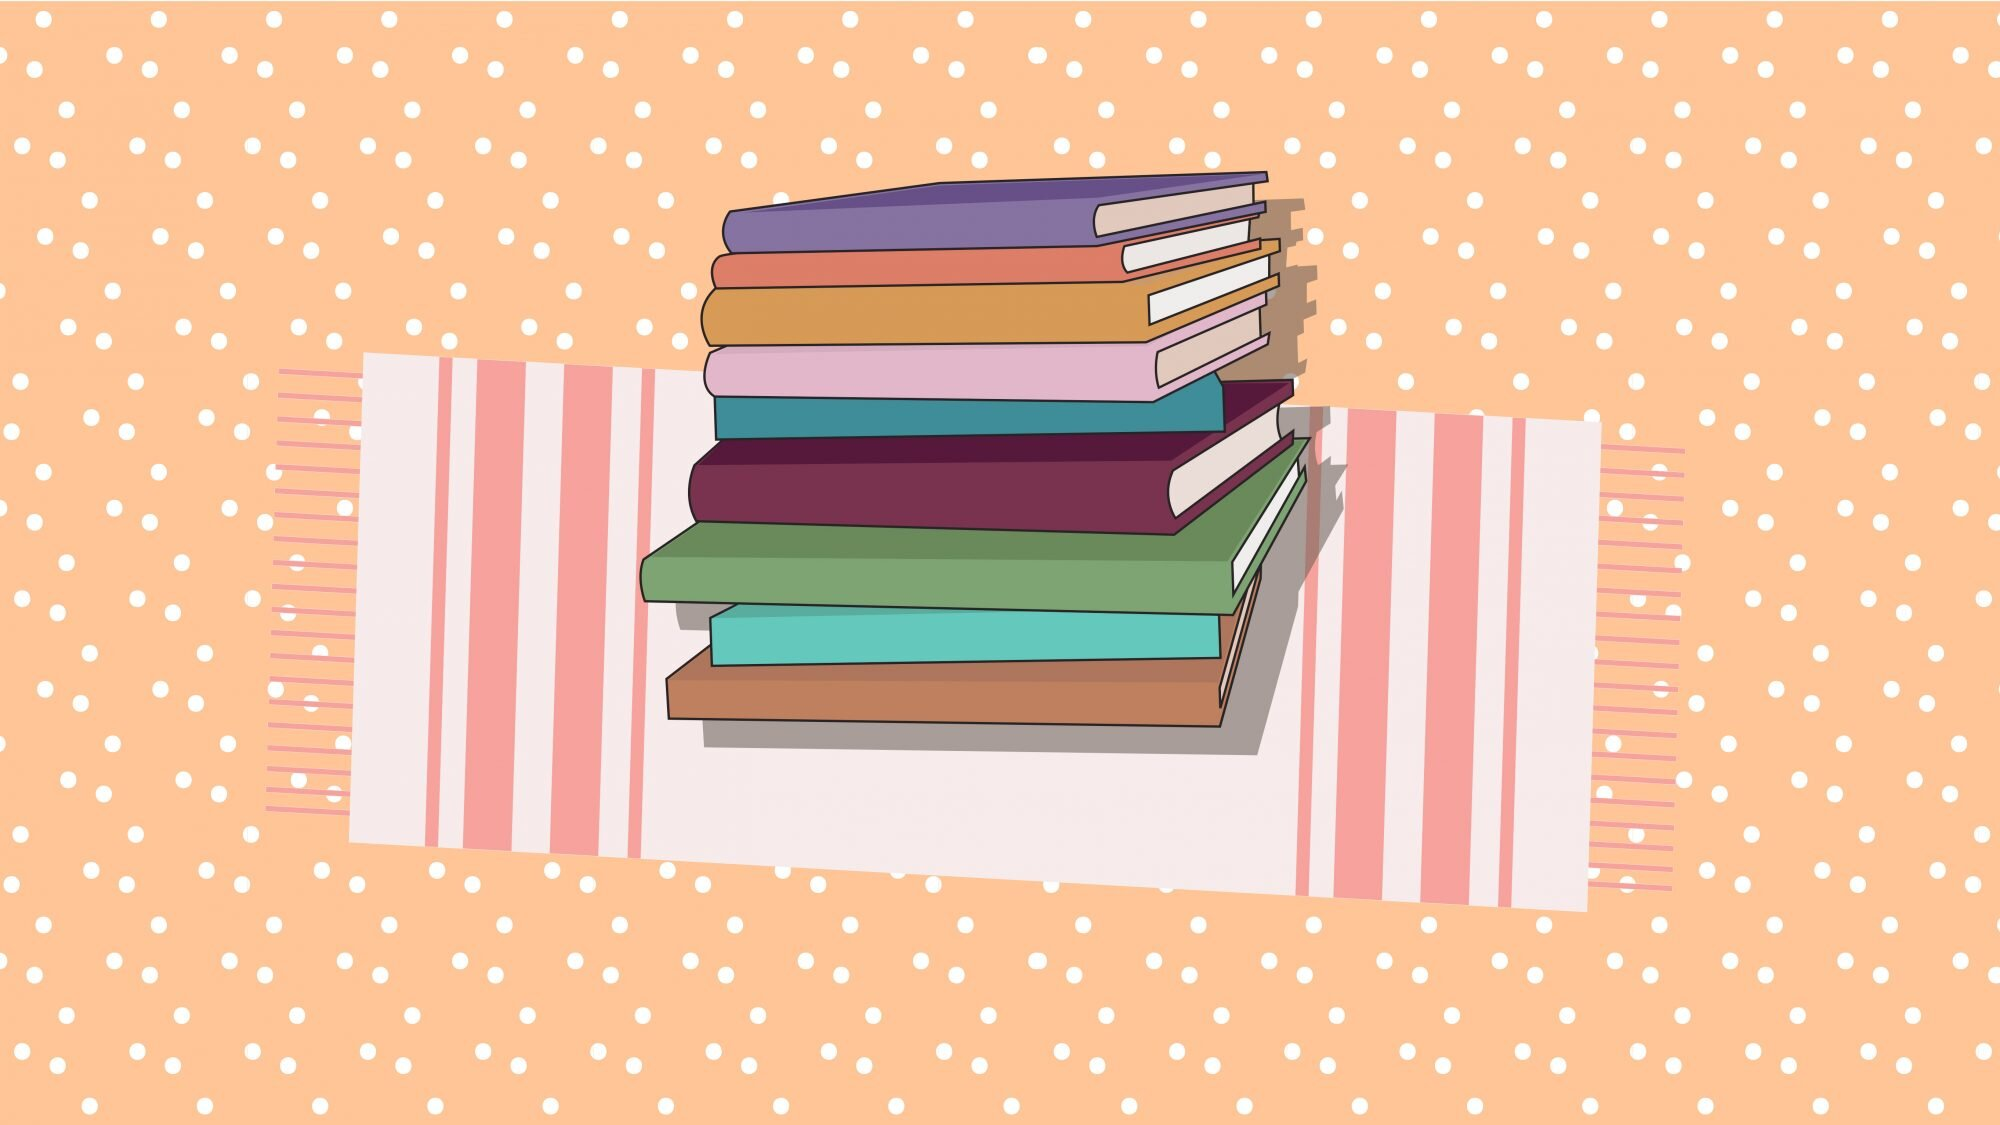 Best Beach Reads 2020 Romance The 9 Best Beach Reads to Toss in Your Bag This Summer